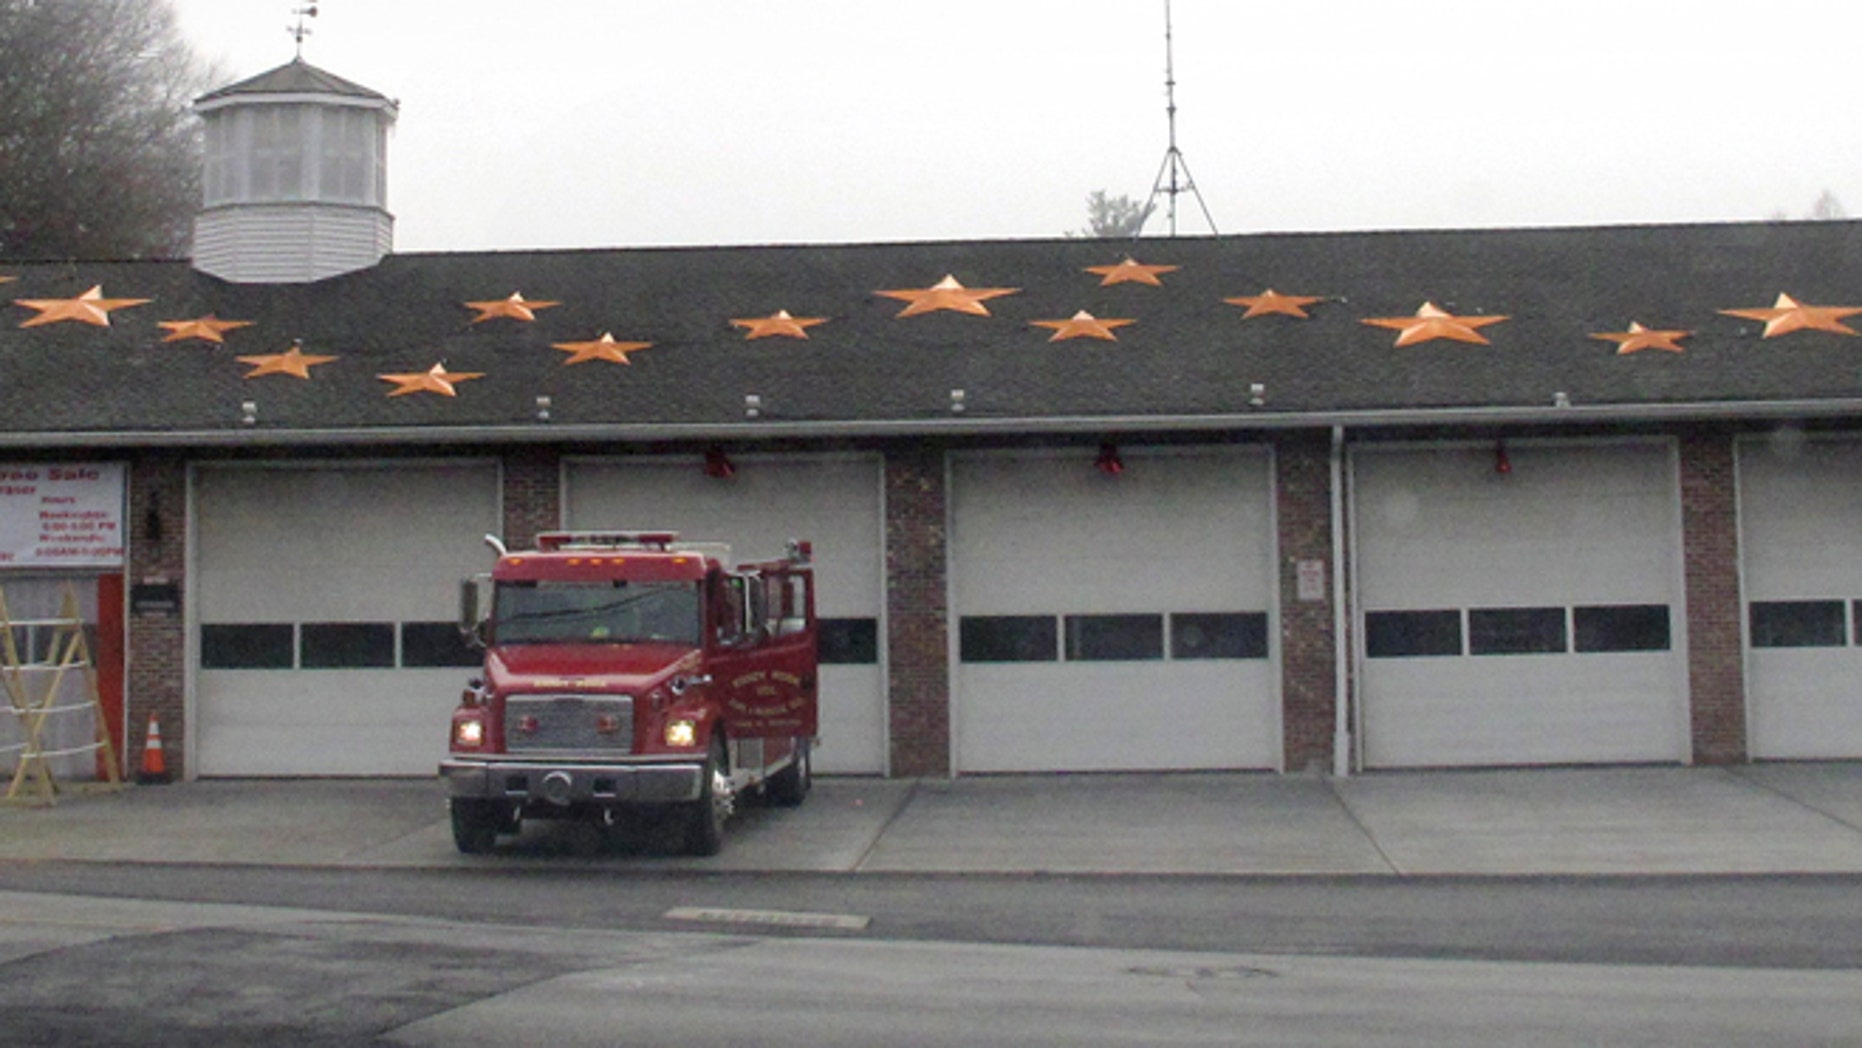 In this Friday, Dec. 11, 2015 photo, 26 stars decorate the roof of the Sandy Hook Volunteer Fire & Rescue Co. firehouse in Newtown, Conn. The stars are in memory of the victims of the Dec. 14, 2012 shooting at the adjacent to Sandy Hook Elementary School where 20 students and six adults were killed.